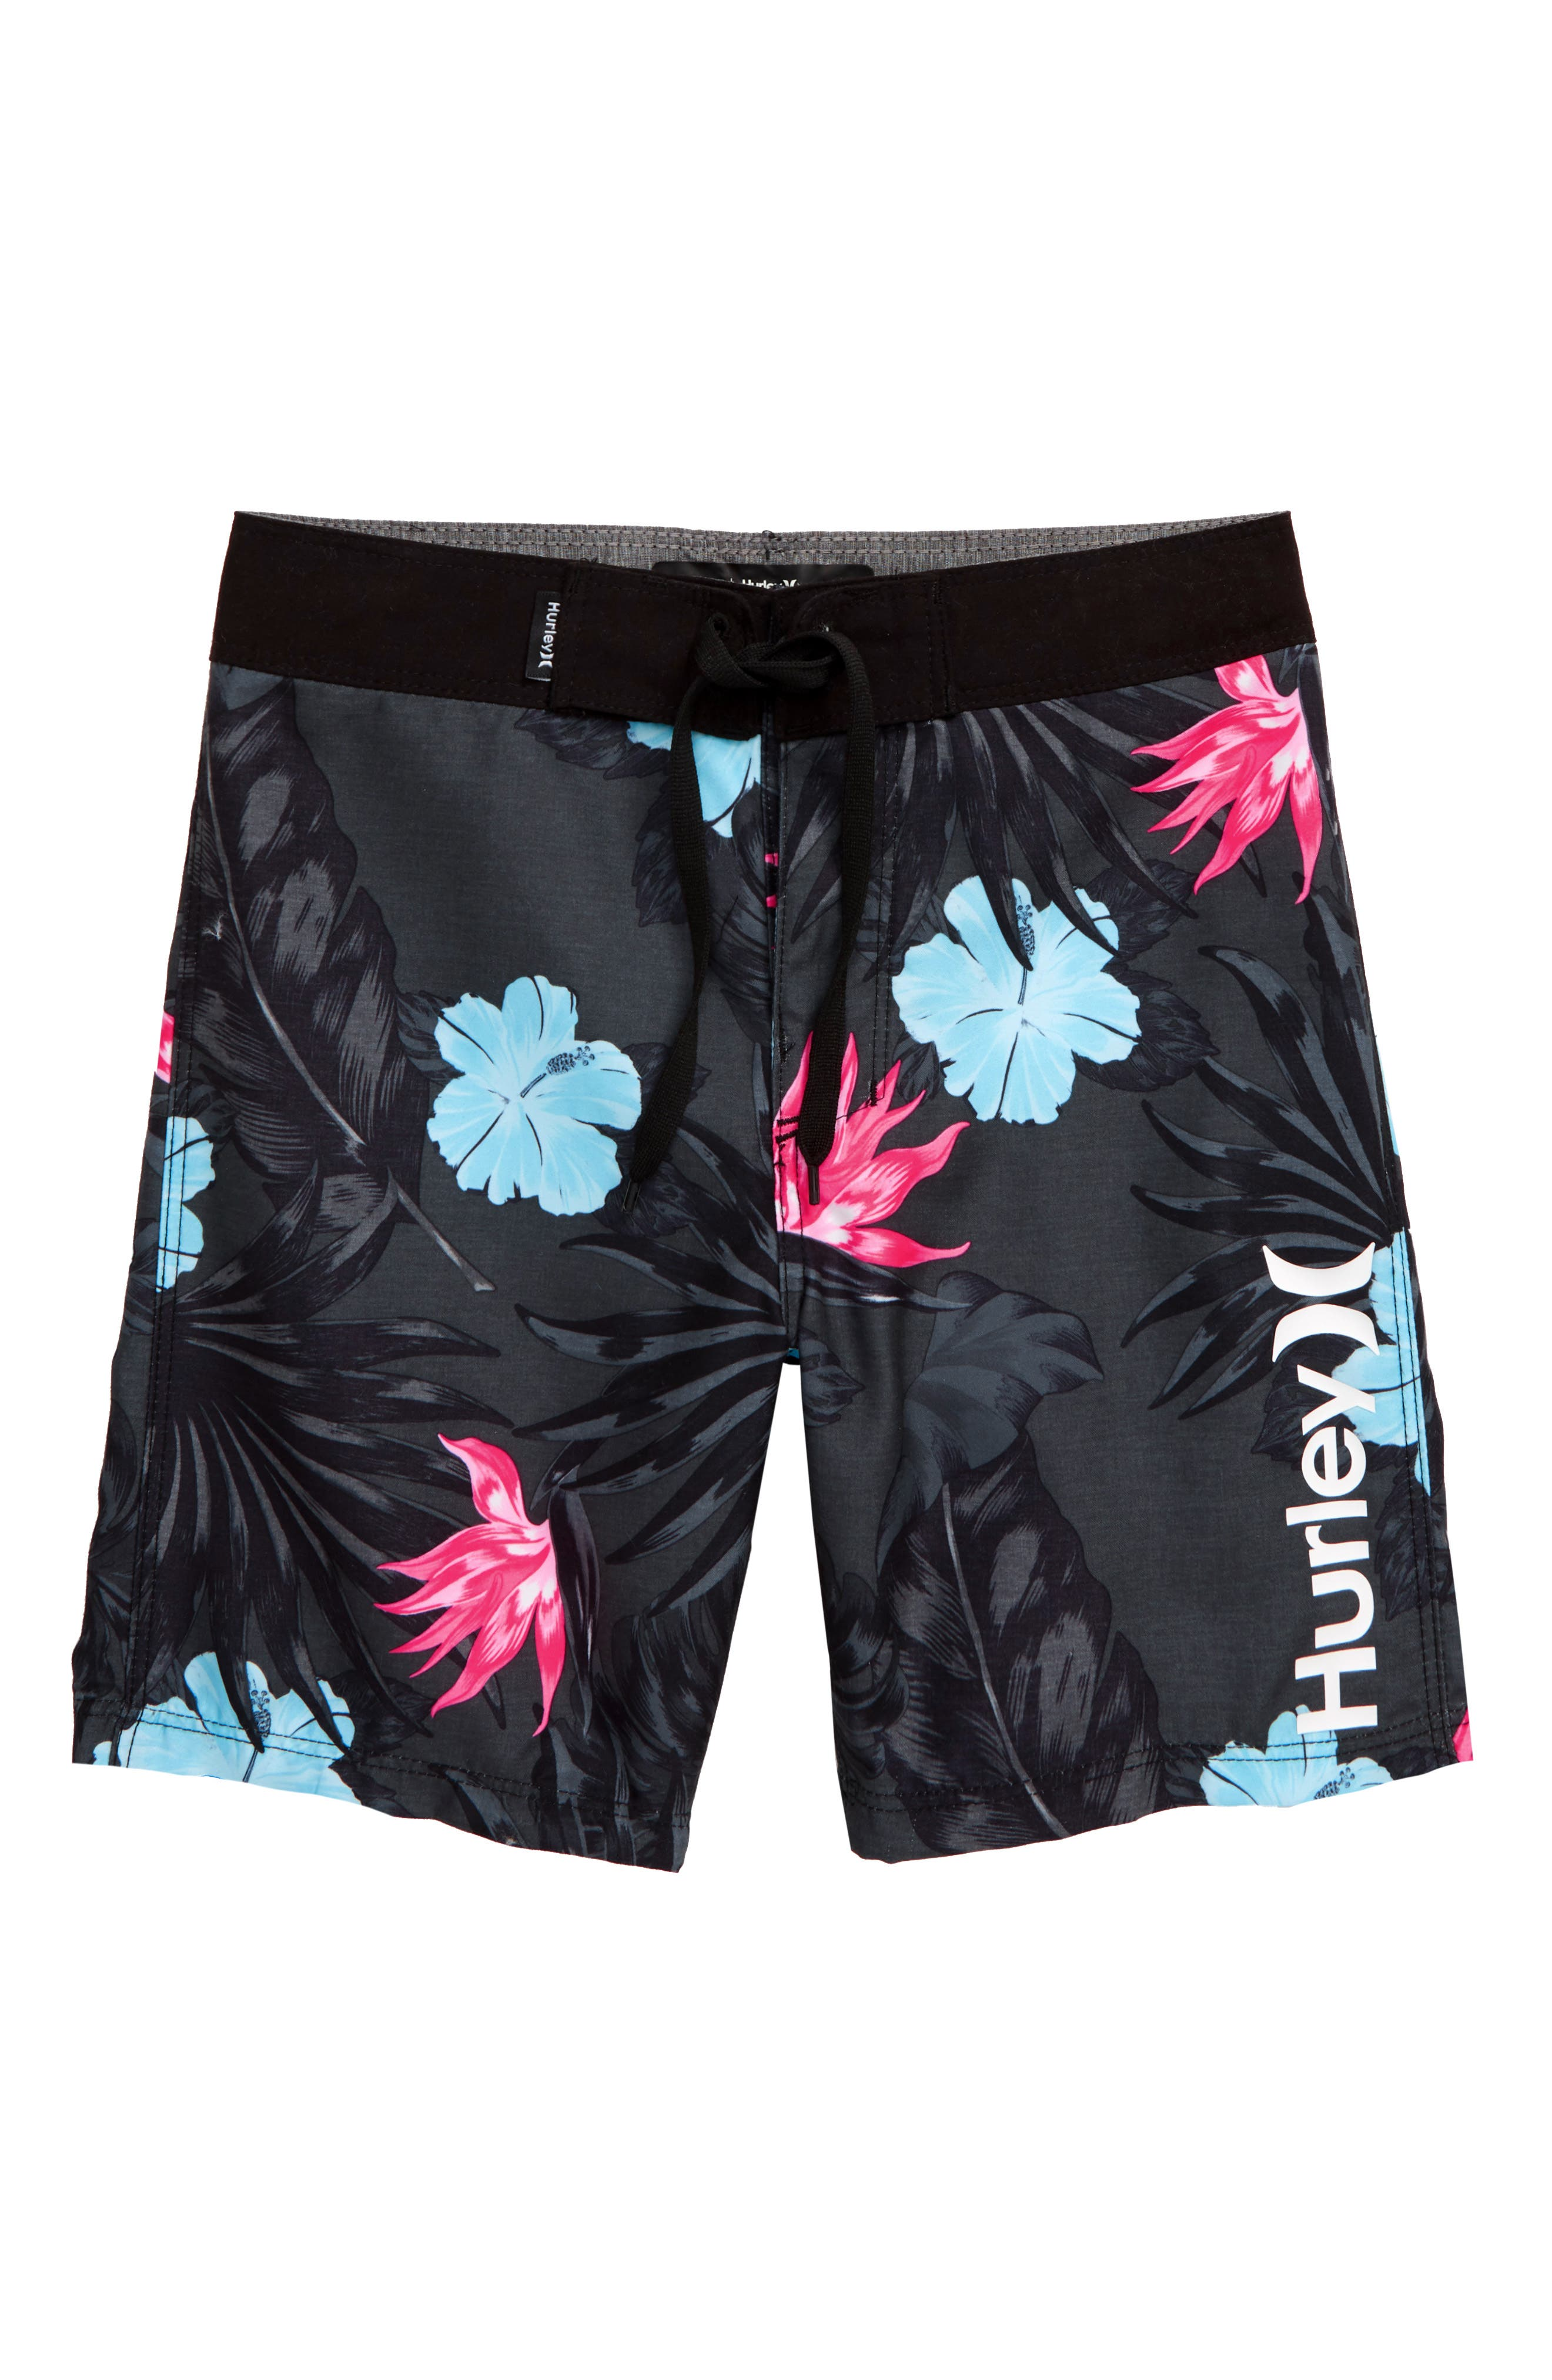 Hkany Moon-Star Teenager Boys Beachwear Beach Shorts Pants Board Shorts